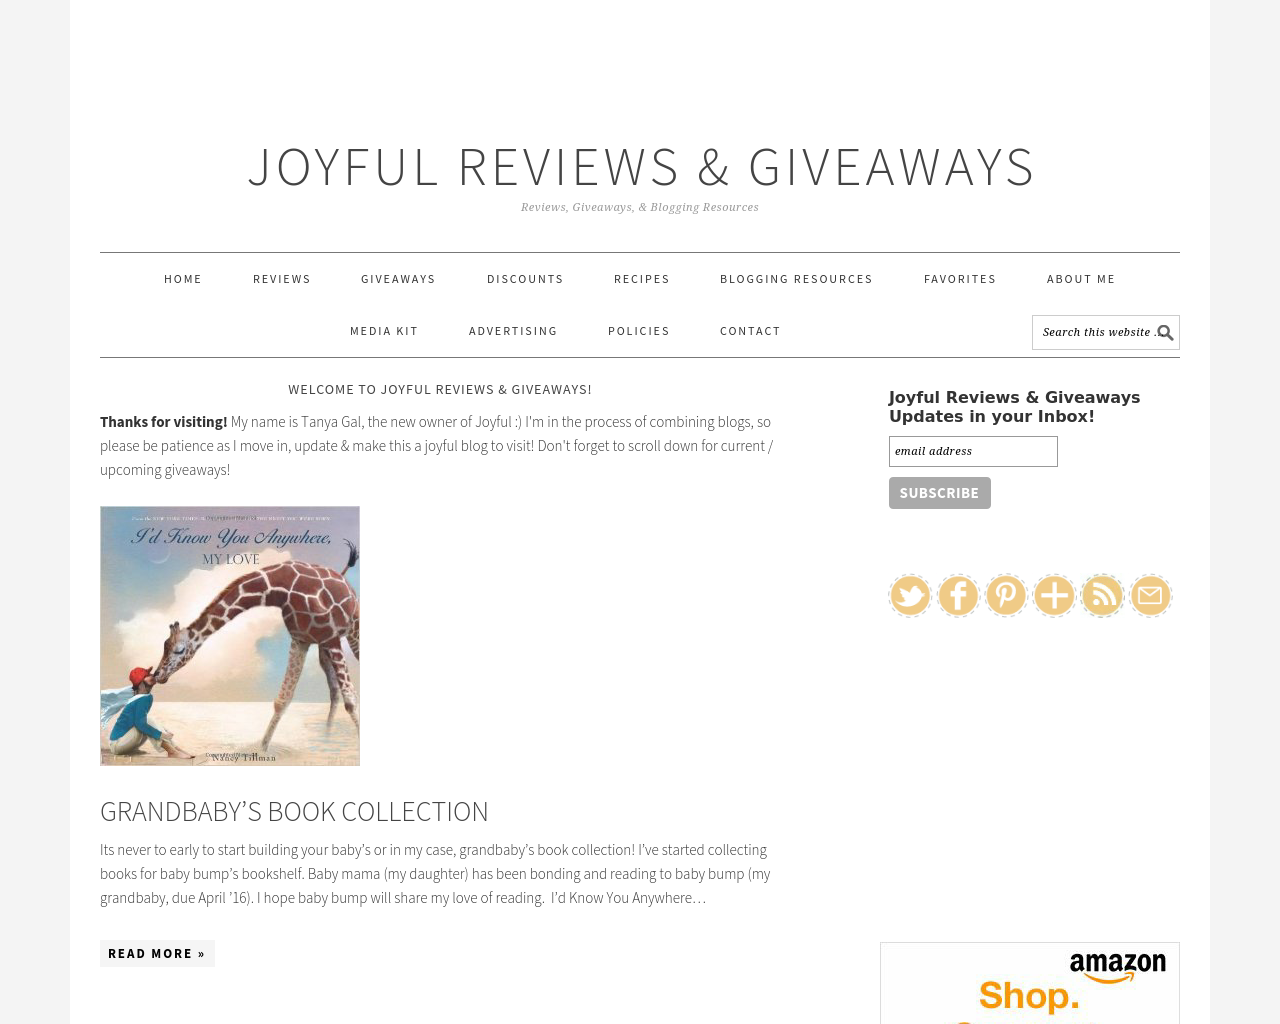 Joyful-Reviews-&-Giveaways-Advertising-Reviews-Pricing